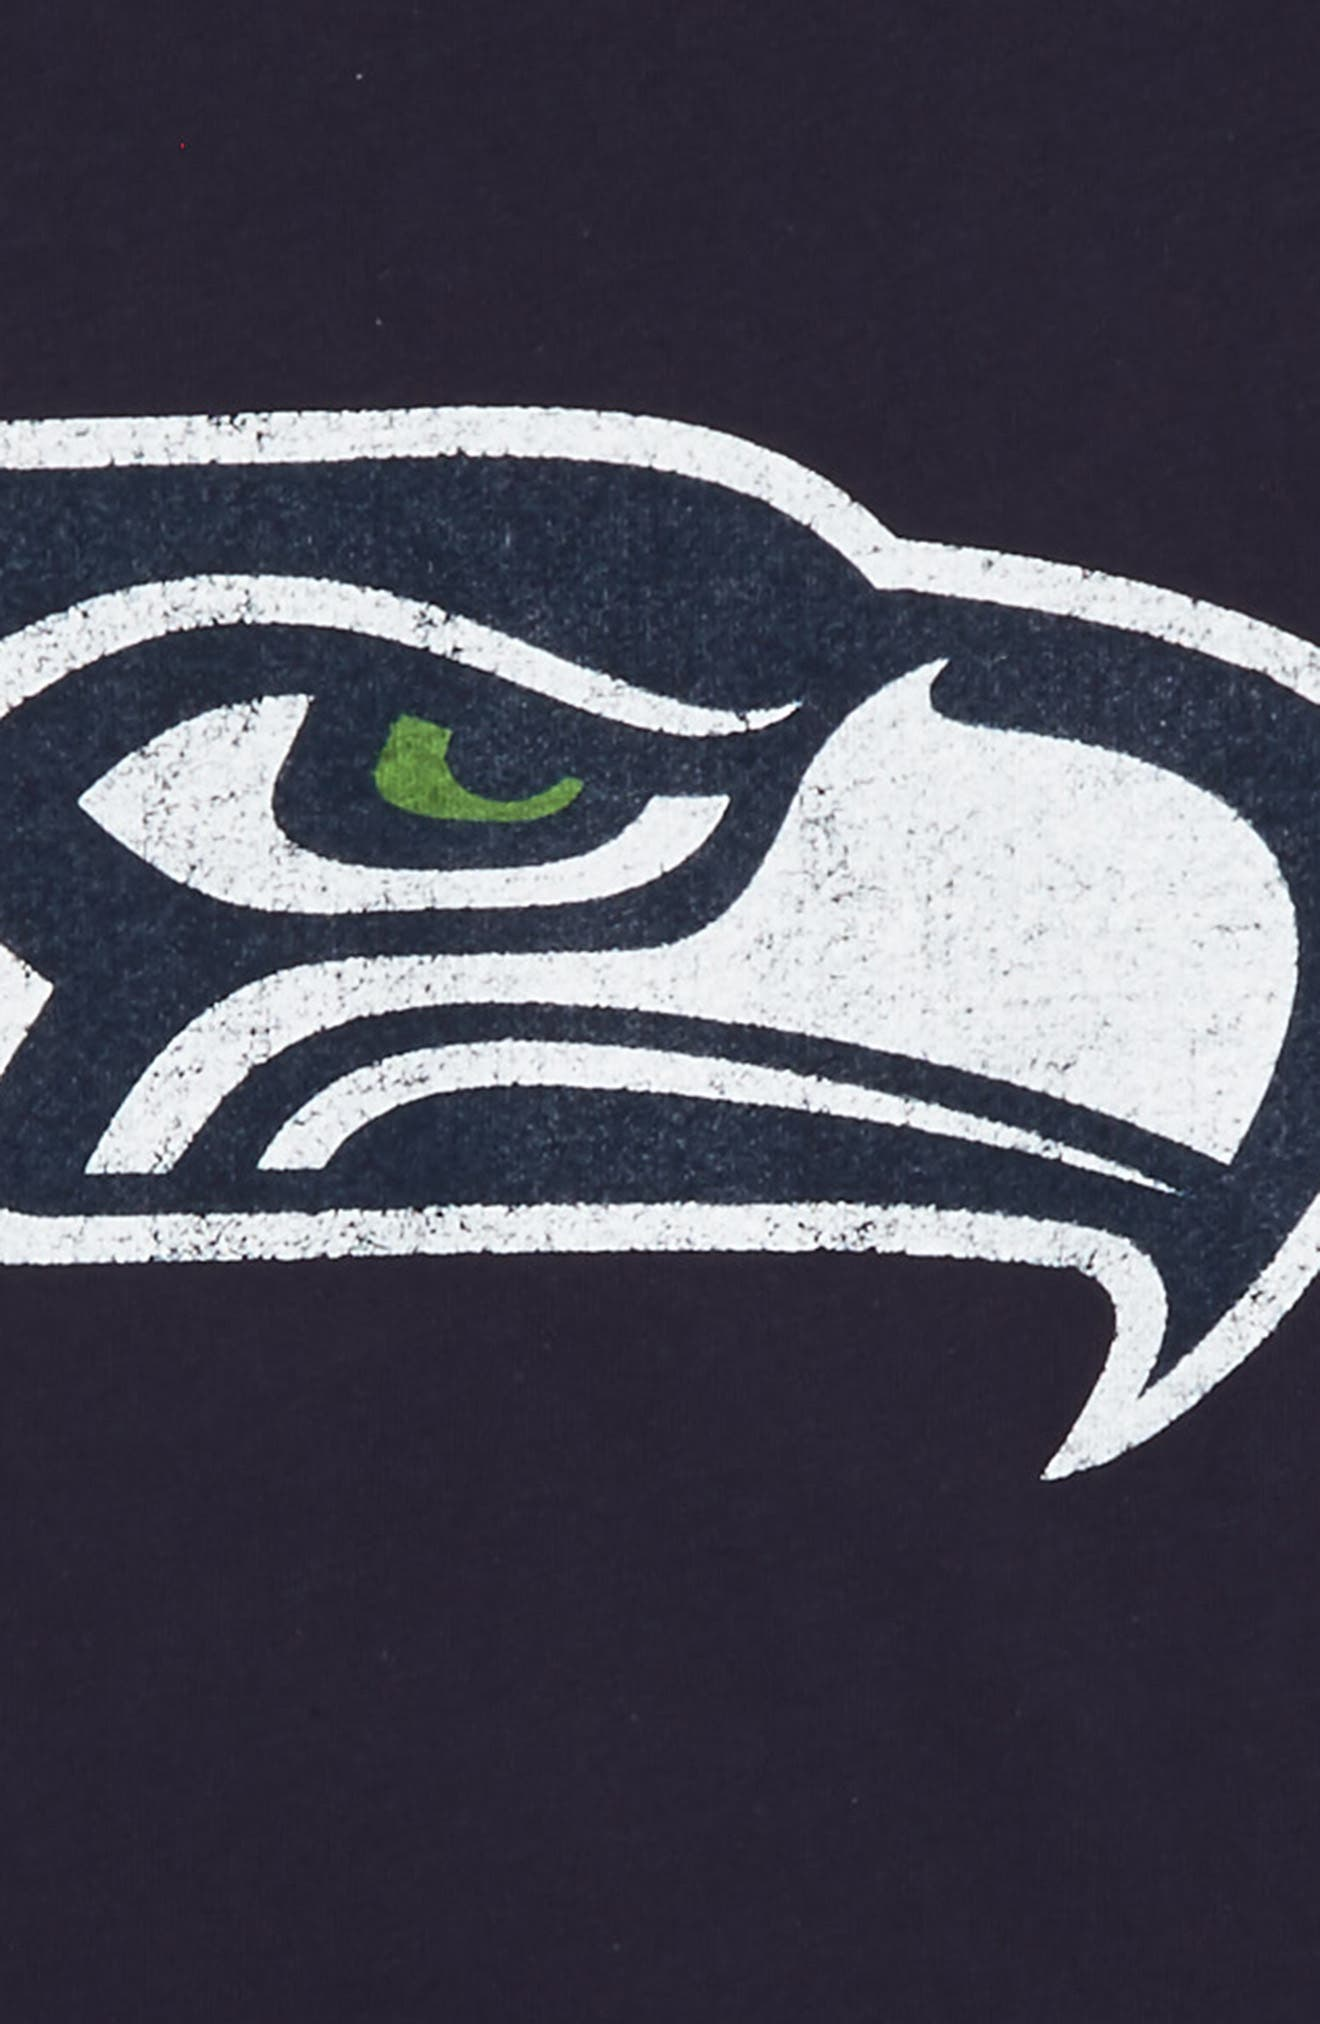 'NFL - Seattle Seahawks' Distressed Logo Graphic T-Shirt,                             Alternate thumbnail 2, color,                             425